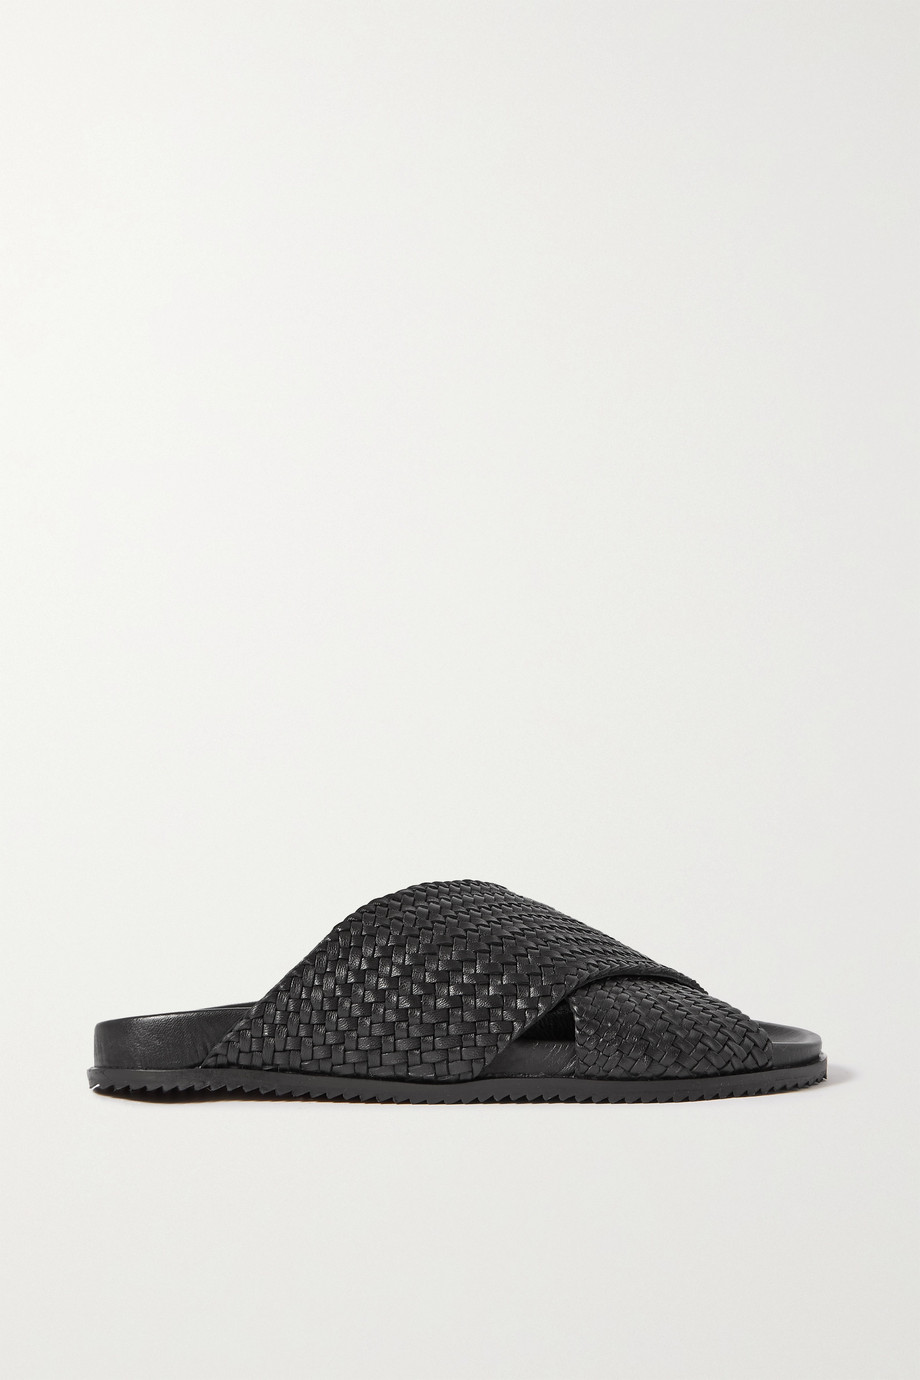 ST. AGNI + NET SUSTAIN Arne woven leather slides